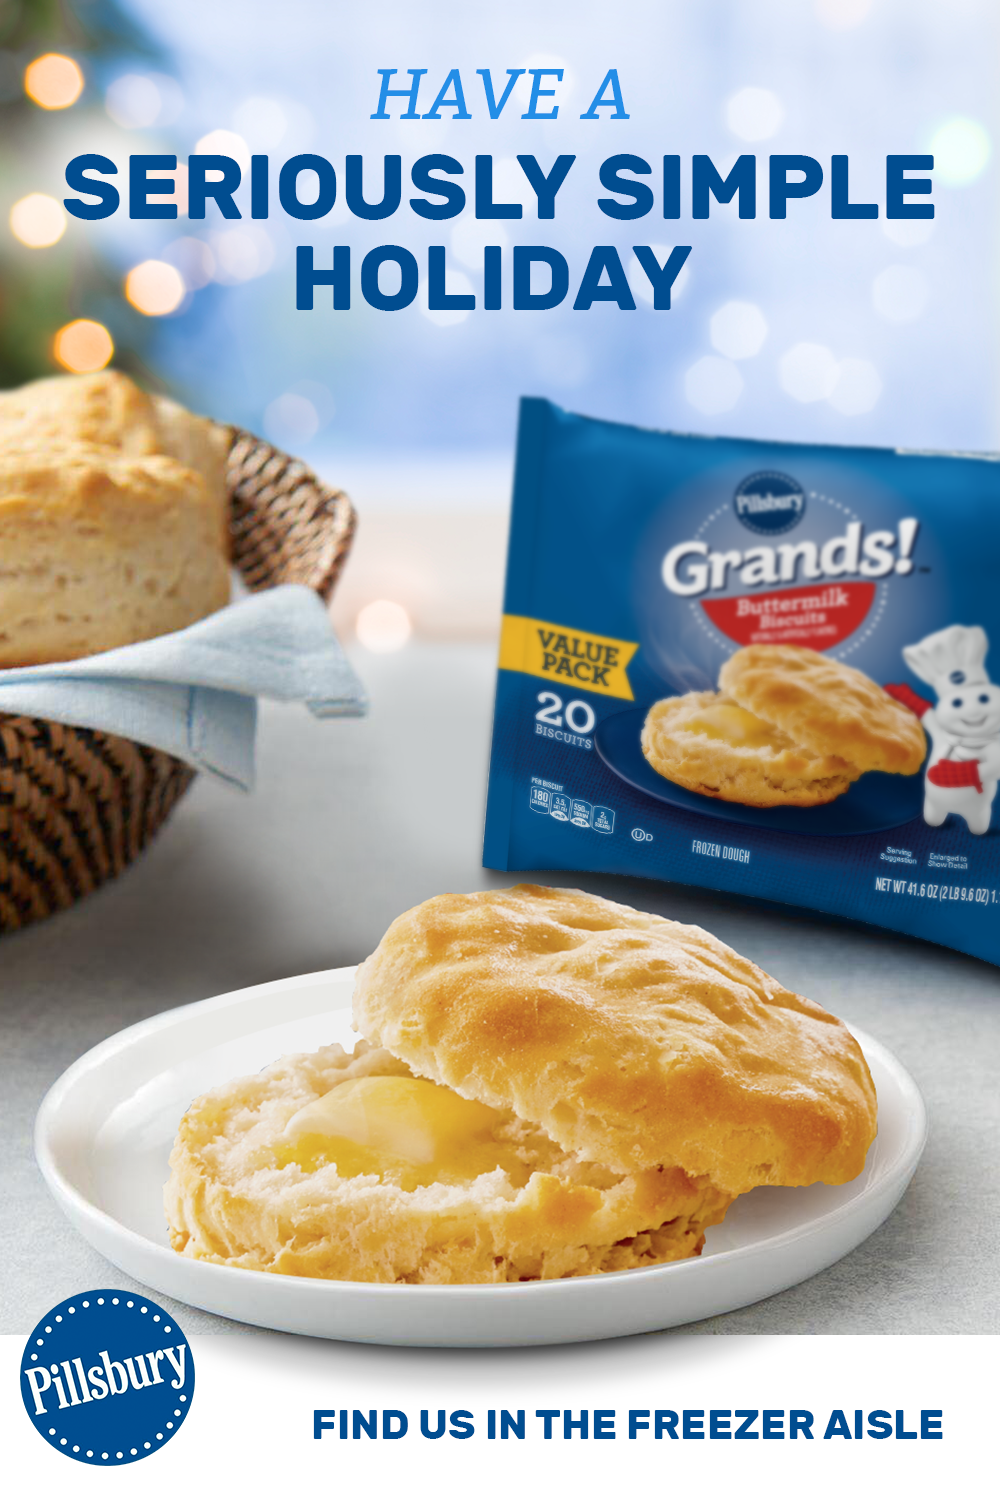 Pillsbury Grands Buttermilk Frozen Biscuits Bake In 22 Minutes Making Your Holiday Meal Prep Incredibly Easy Frozen Biscuits Biscuit Recipe Homemade Recipes